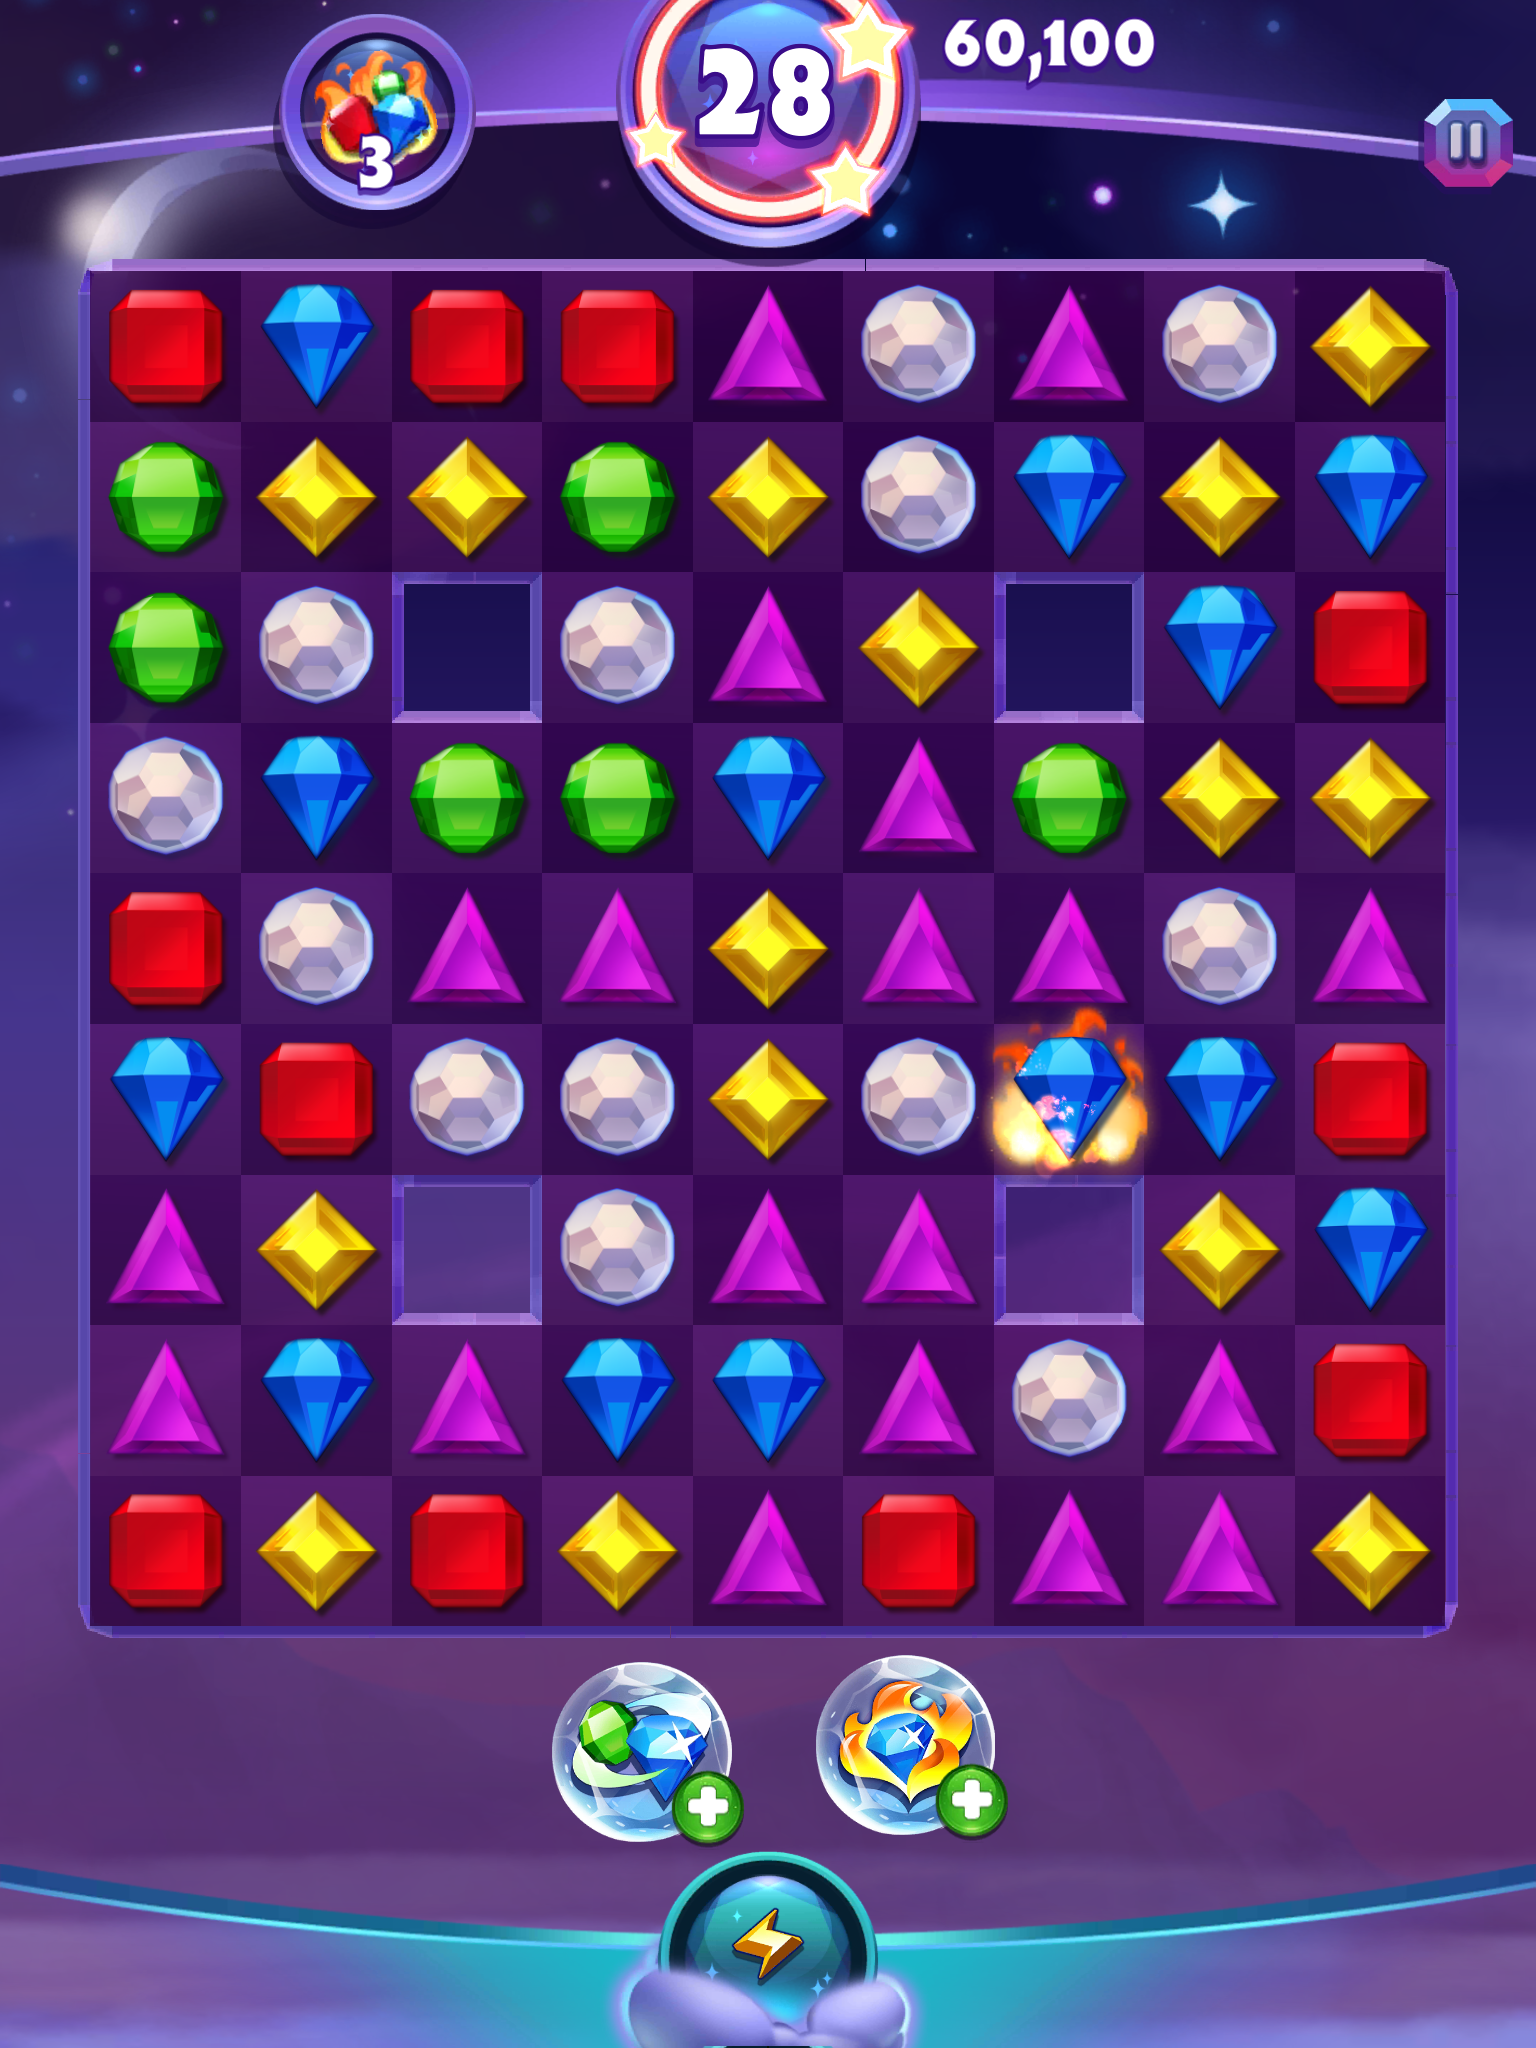 Bejeweled Stars is Puzzle Brain Games and developed by